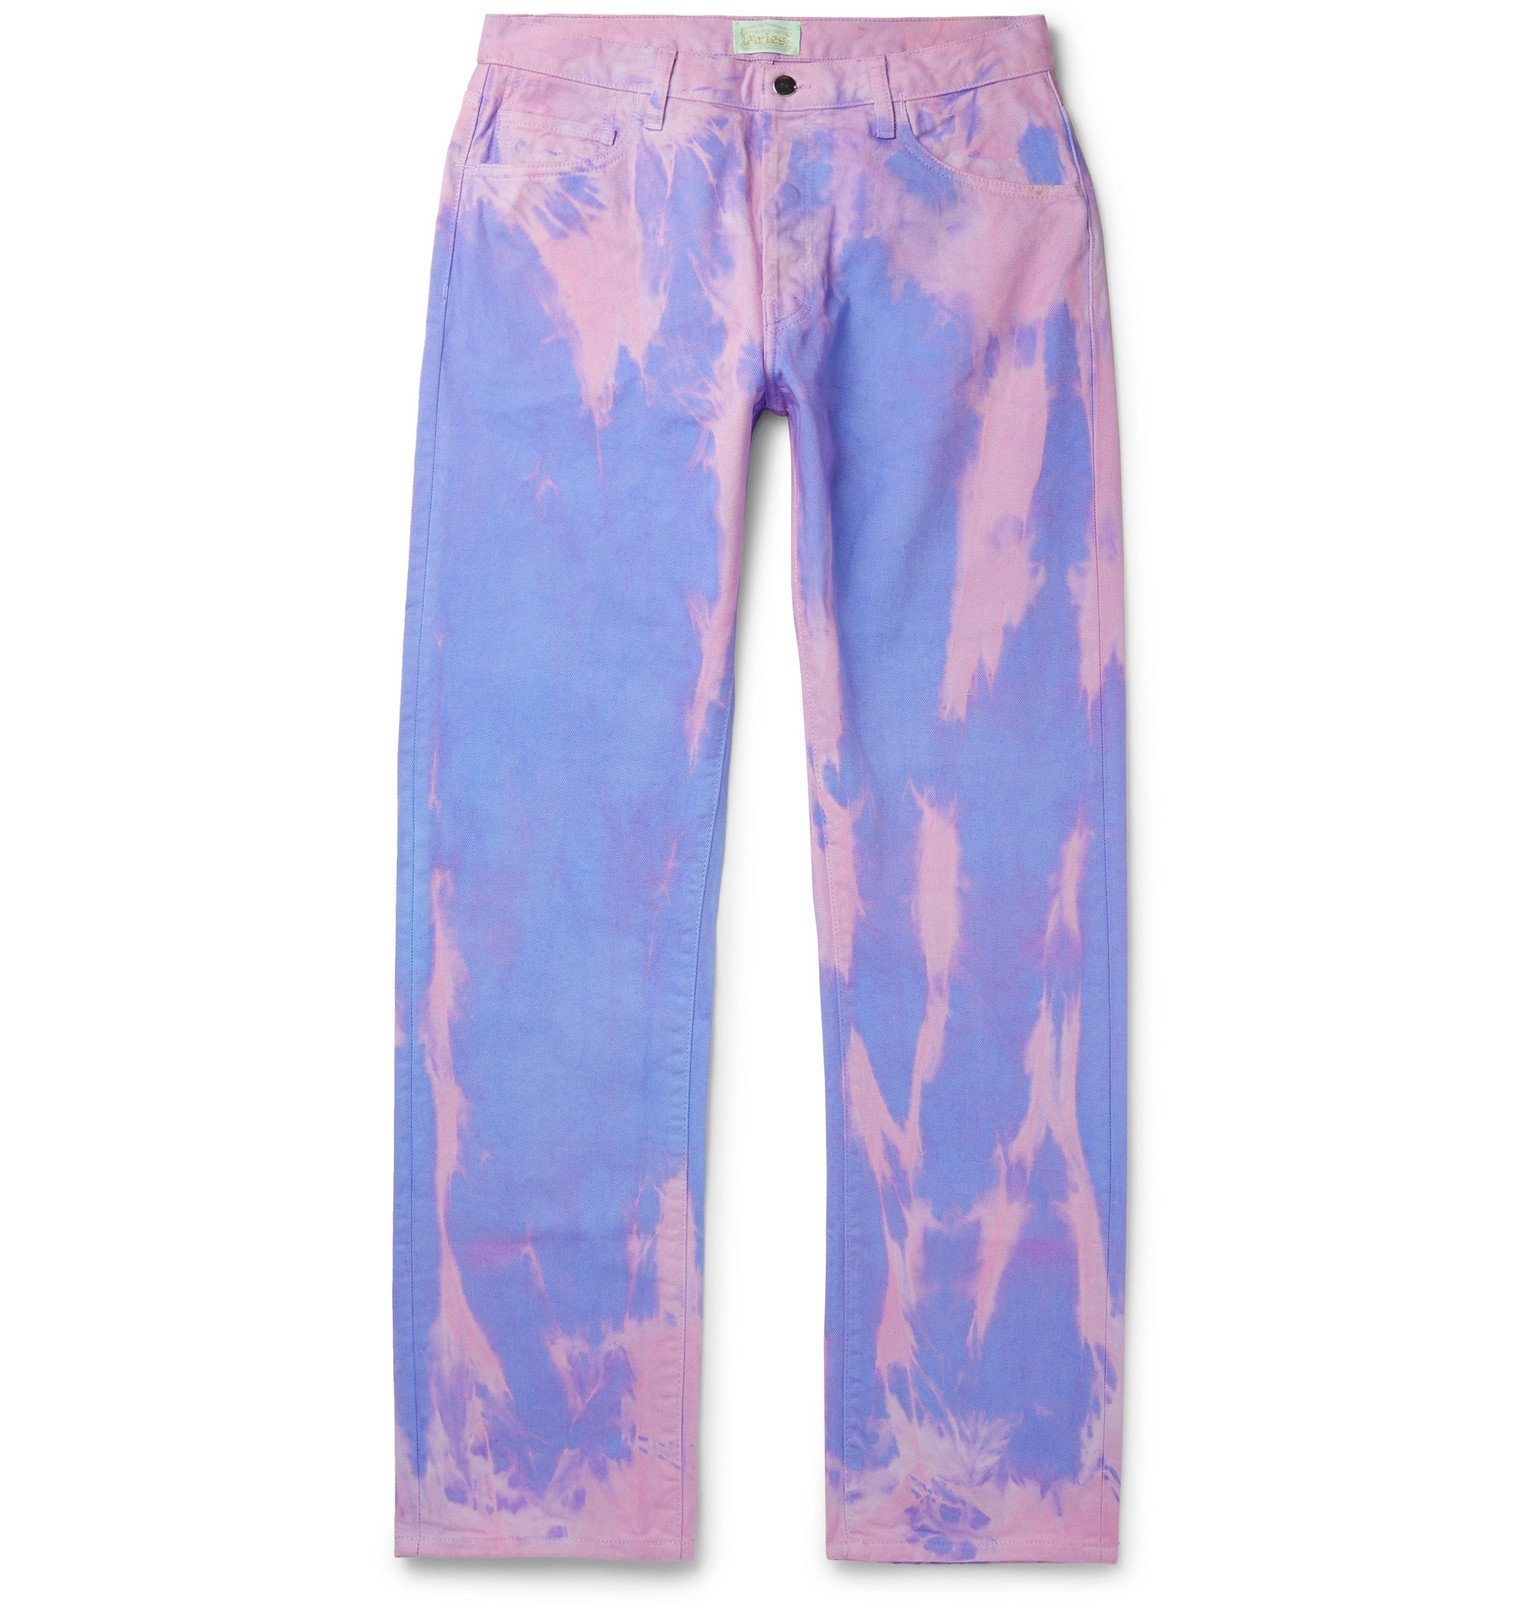 Aries - Lilly Tie-Dyed Denim Jeans - Pink